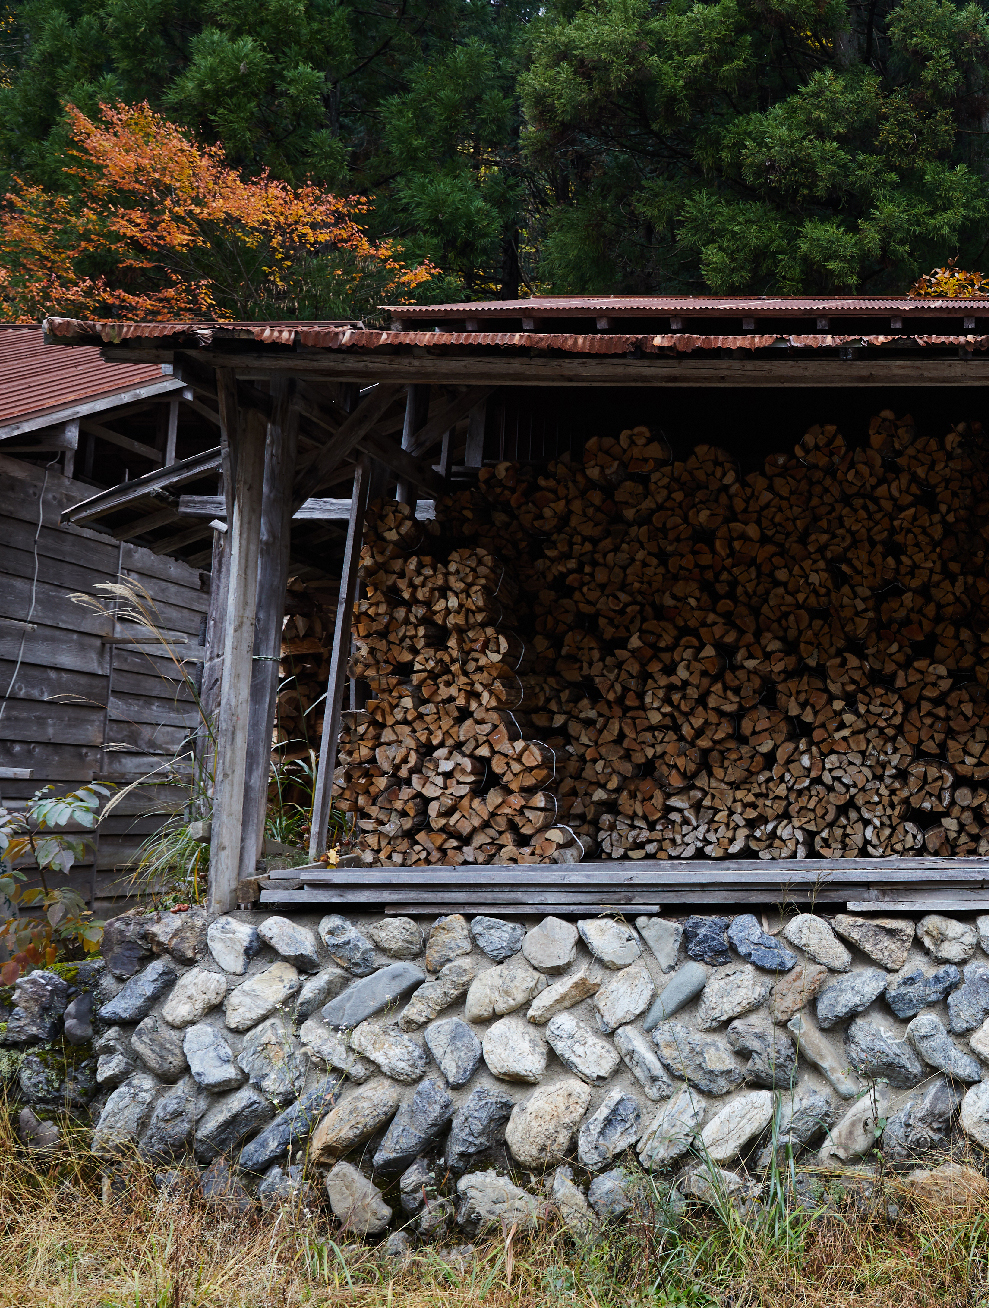 The firewood that makes monk remarkable